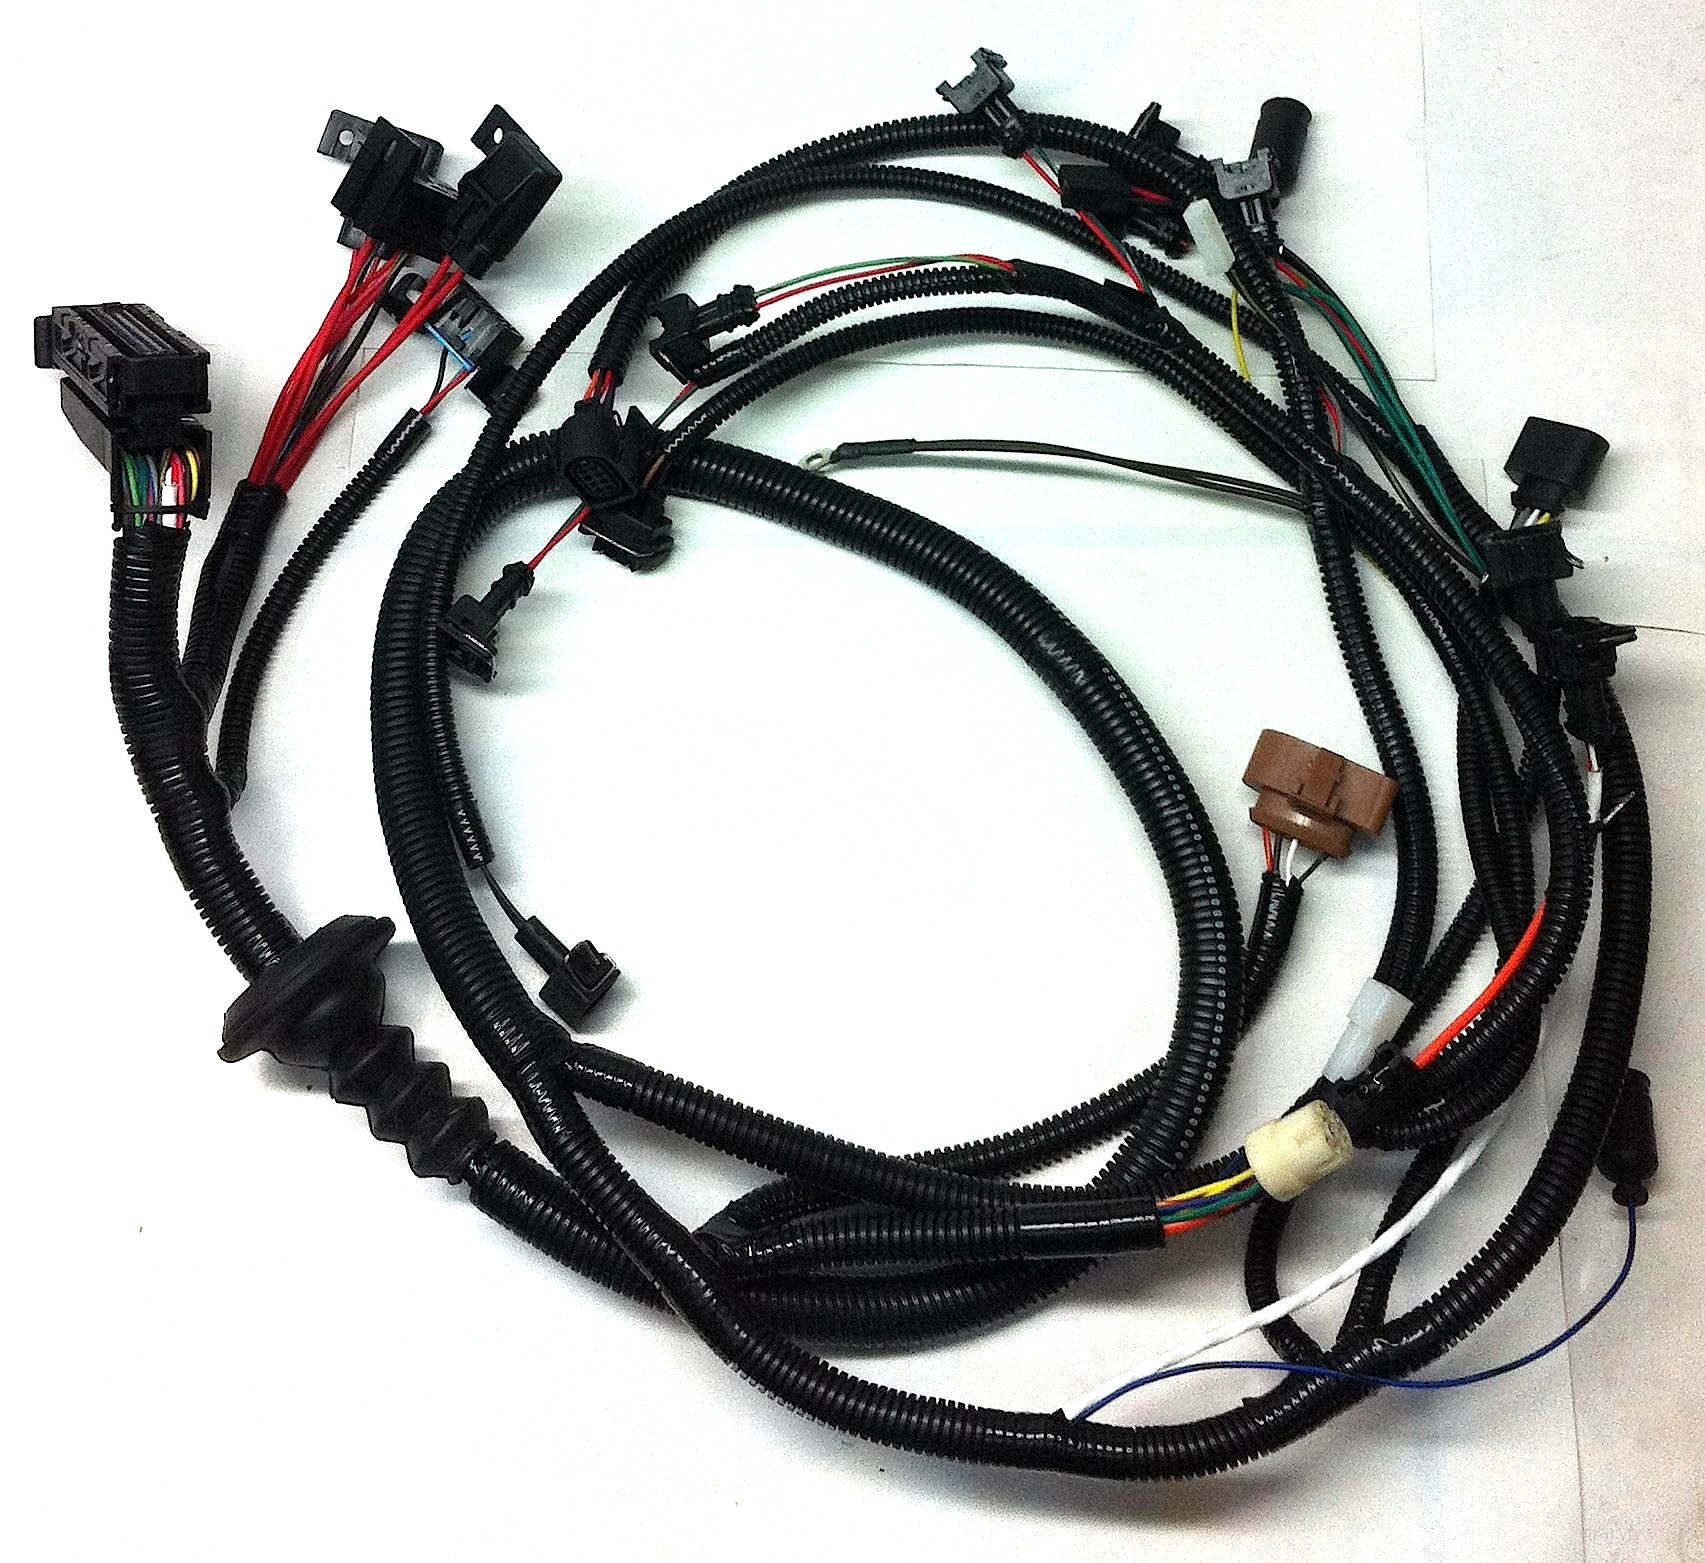 2LR / Tiico Conversion Wiring Harness - Foreign Auto & Supply, Inc.